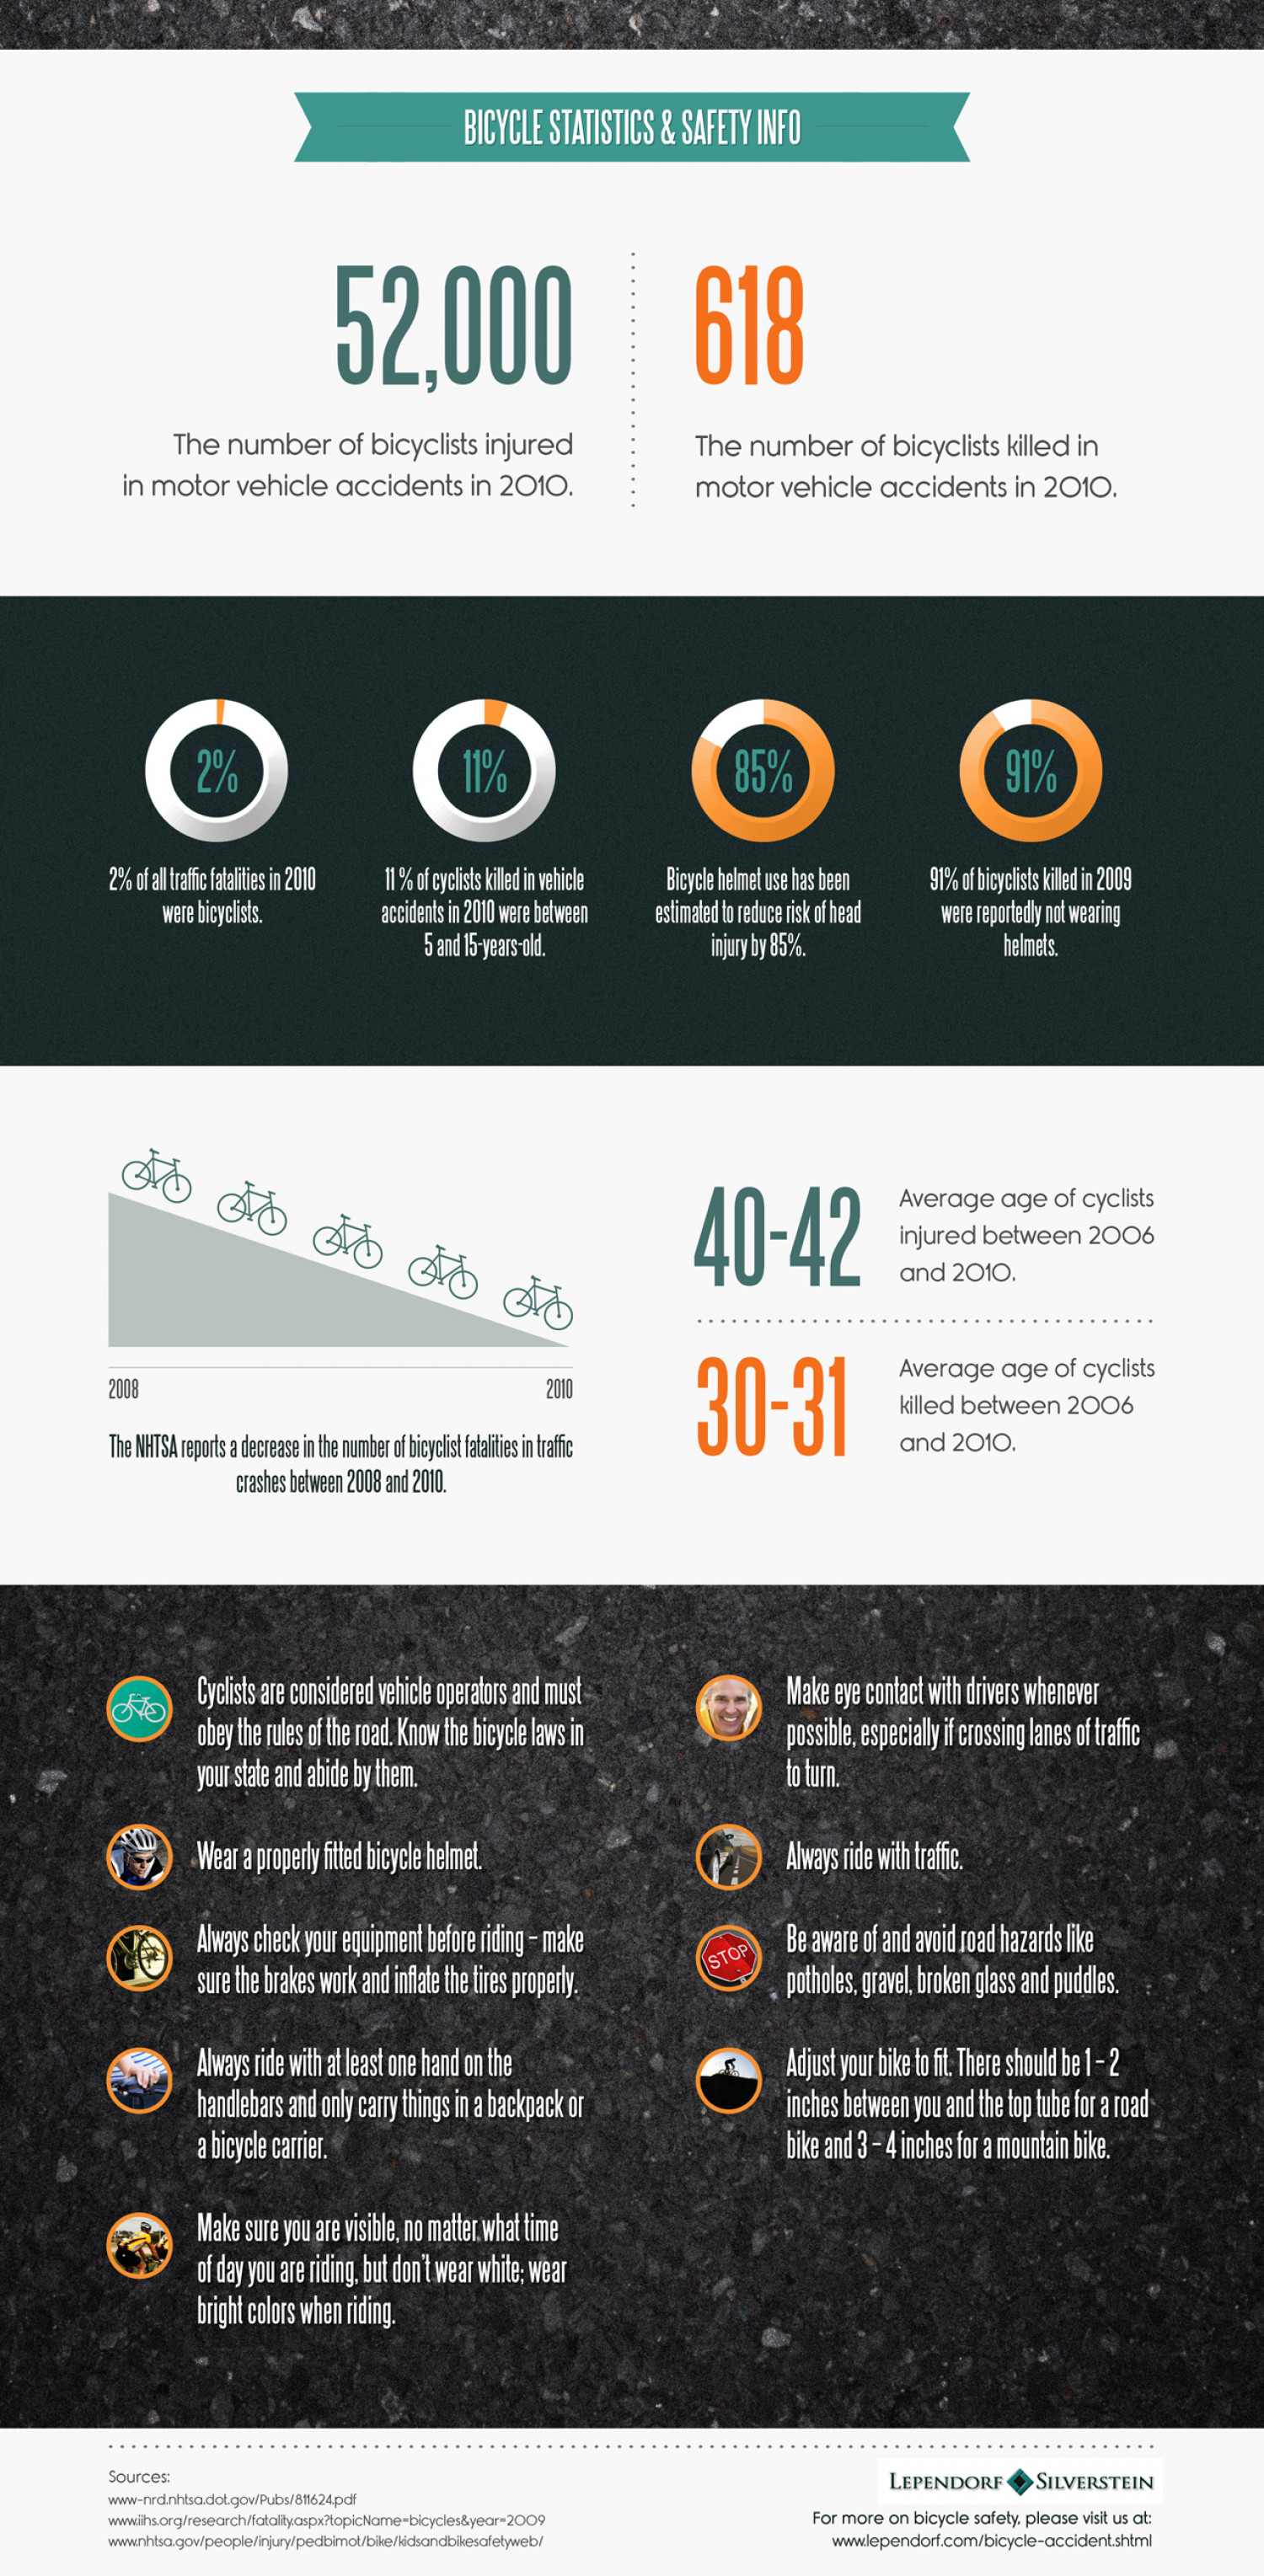 Bicycle Safety & Statistics Infographic